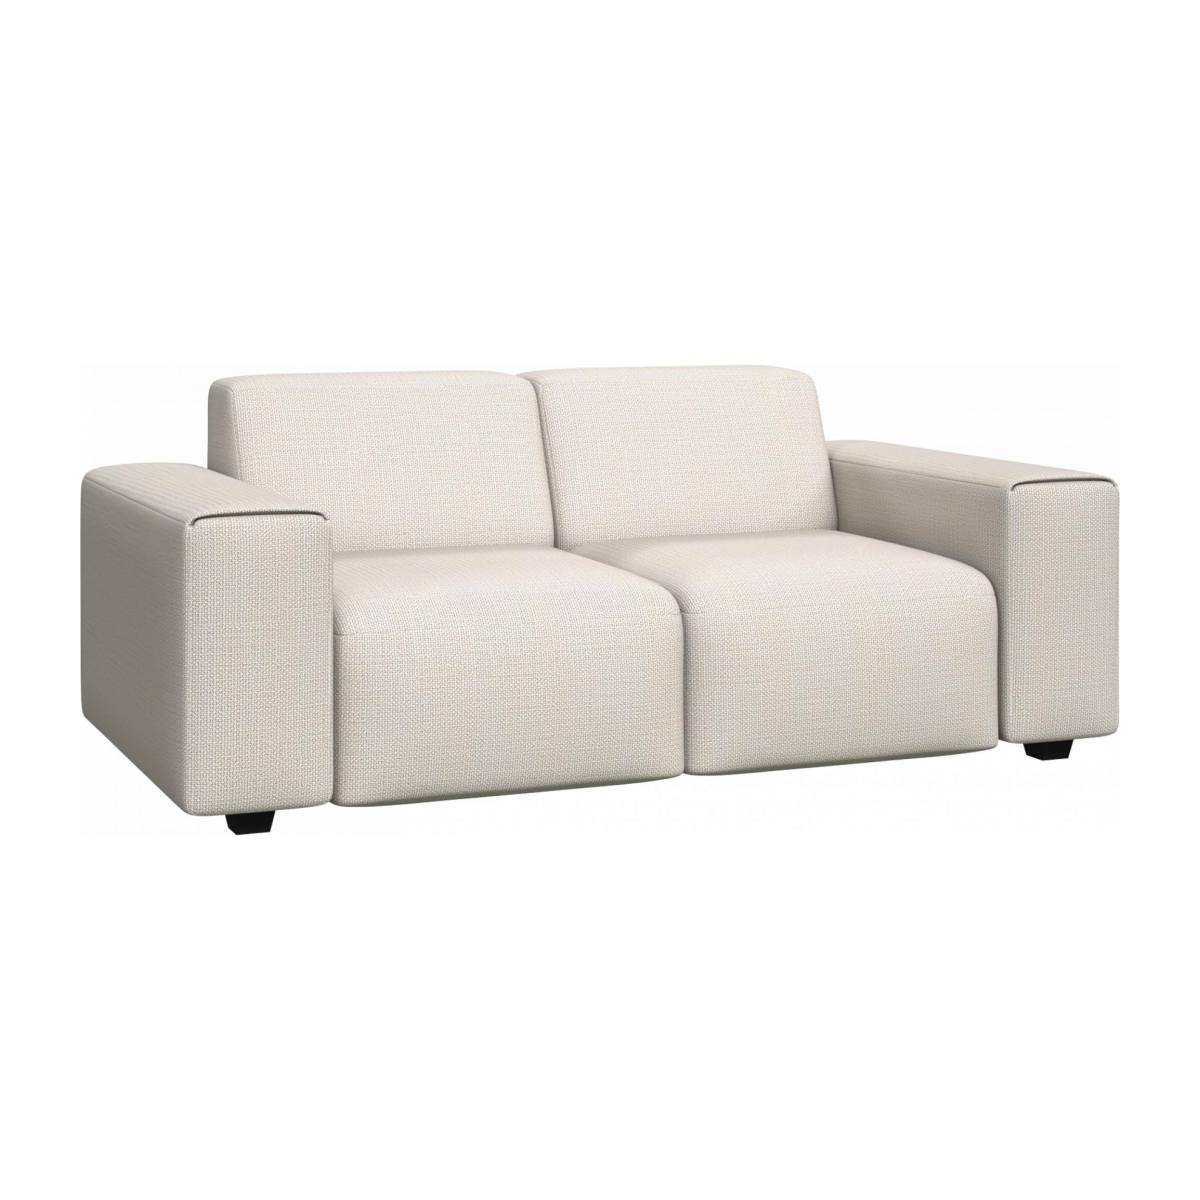 2 seater sofa in Fasoli fabric, snow white n°2